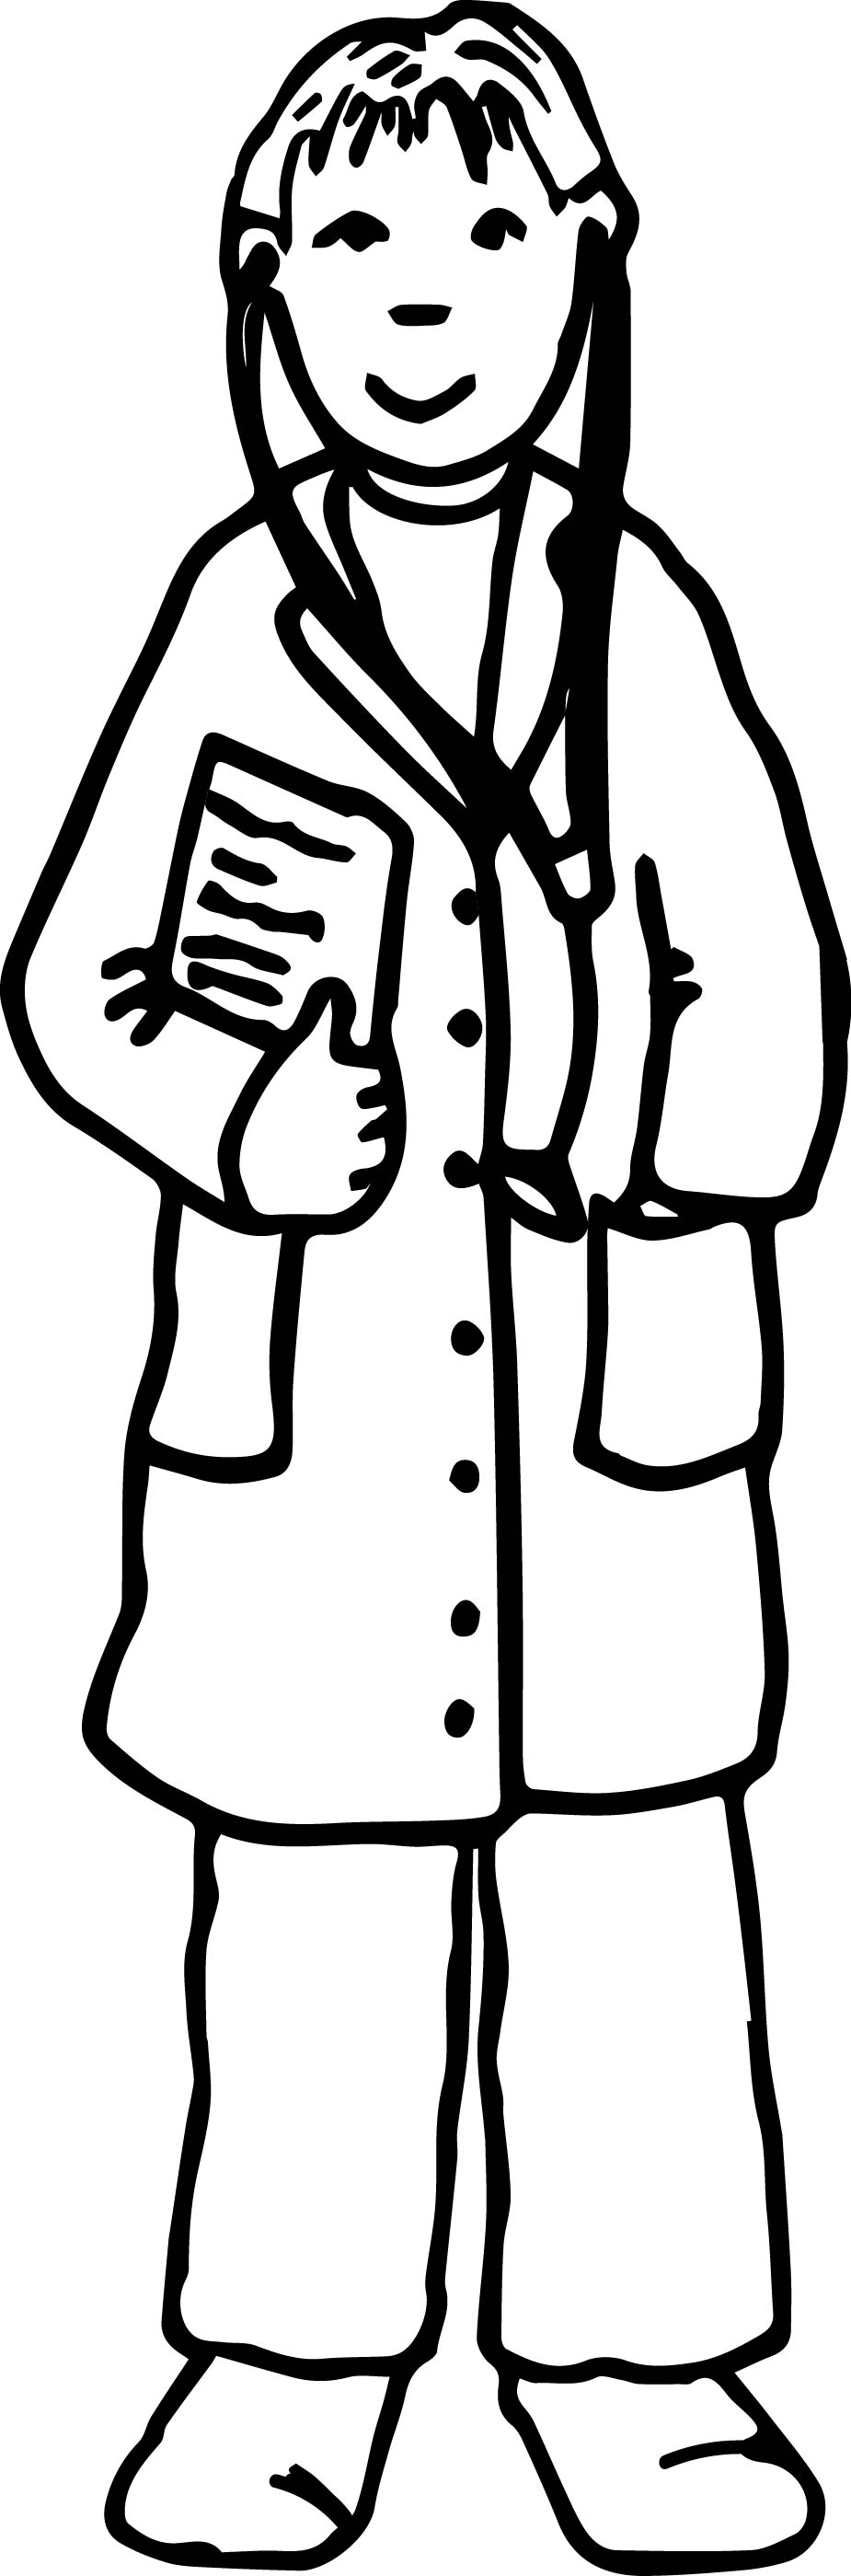 medical doctor male color coloring page wecoloringpage